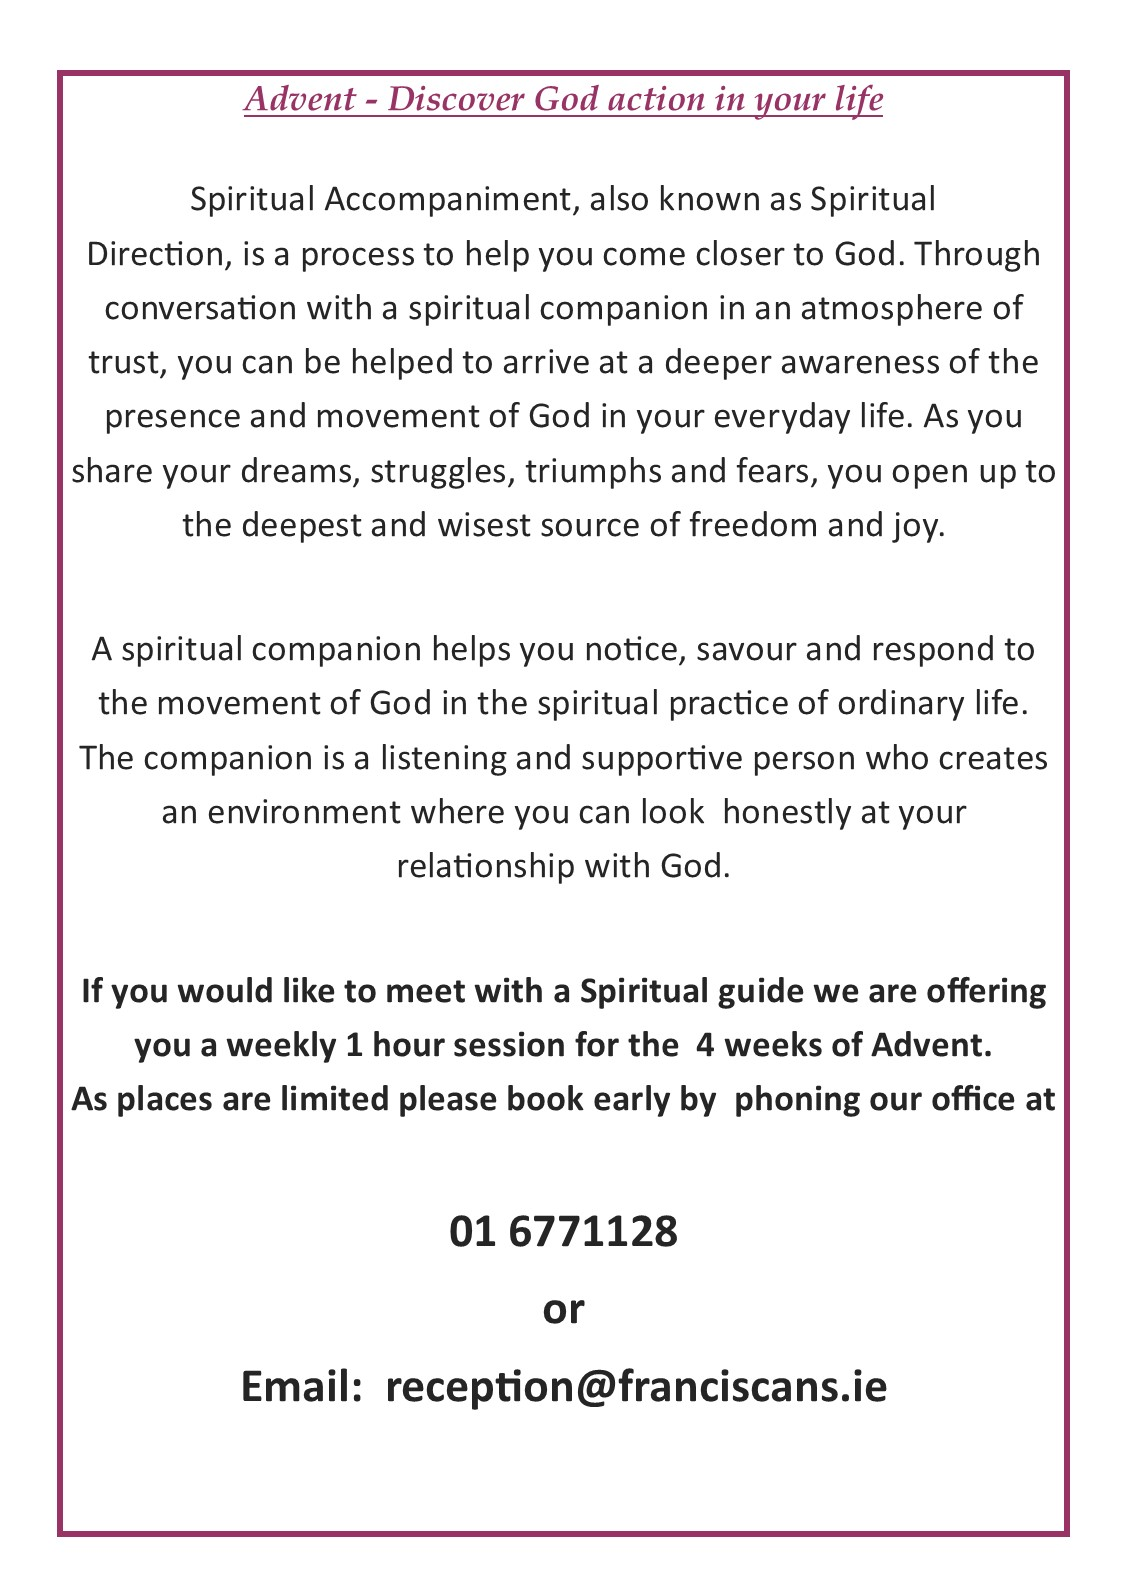 Advent spiritual direction poster 2019